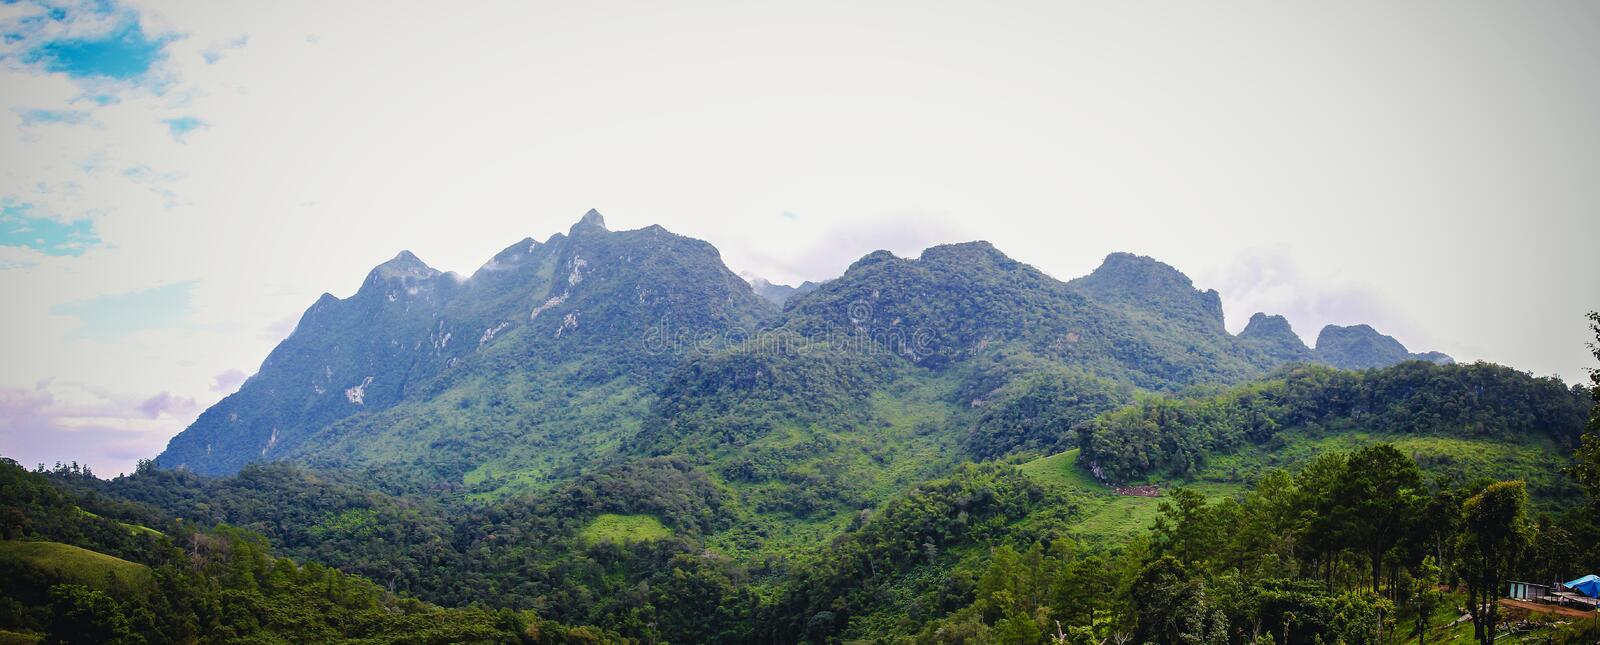 Natural Panorama of Doi Luang Mountain in Chiang Dao Province It is the highest mountain in Thailand. Doi Luang Chiang Dao stock images